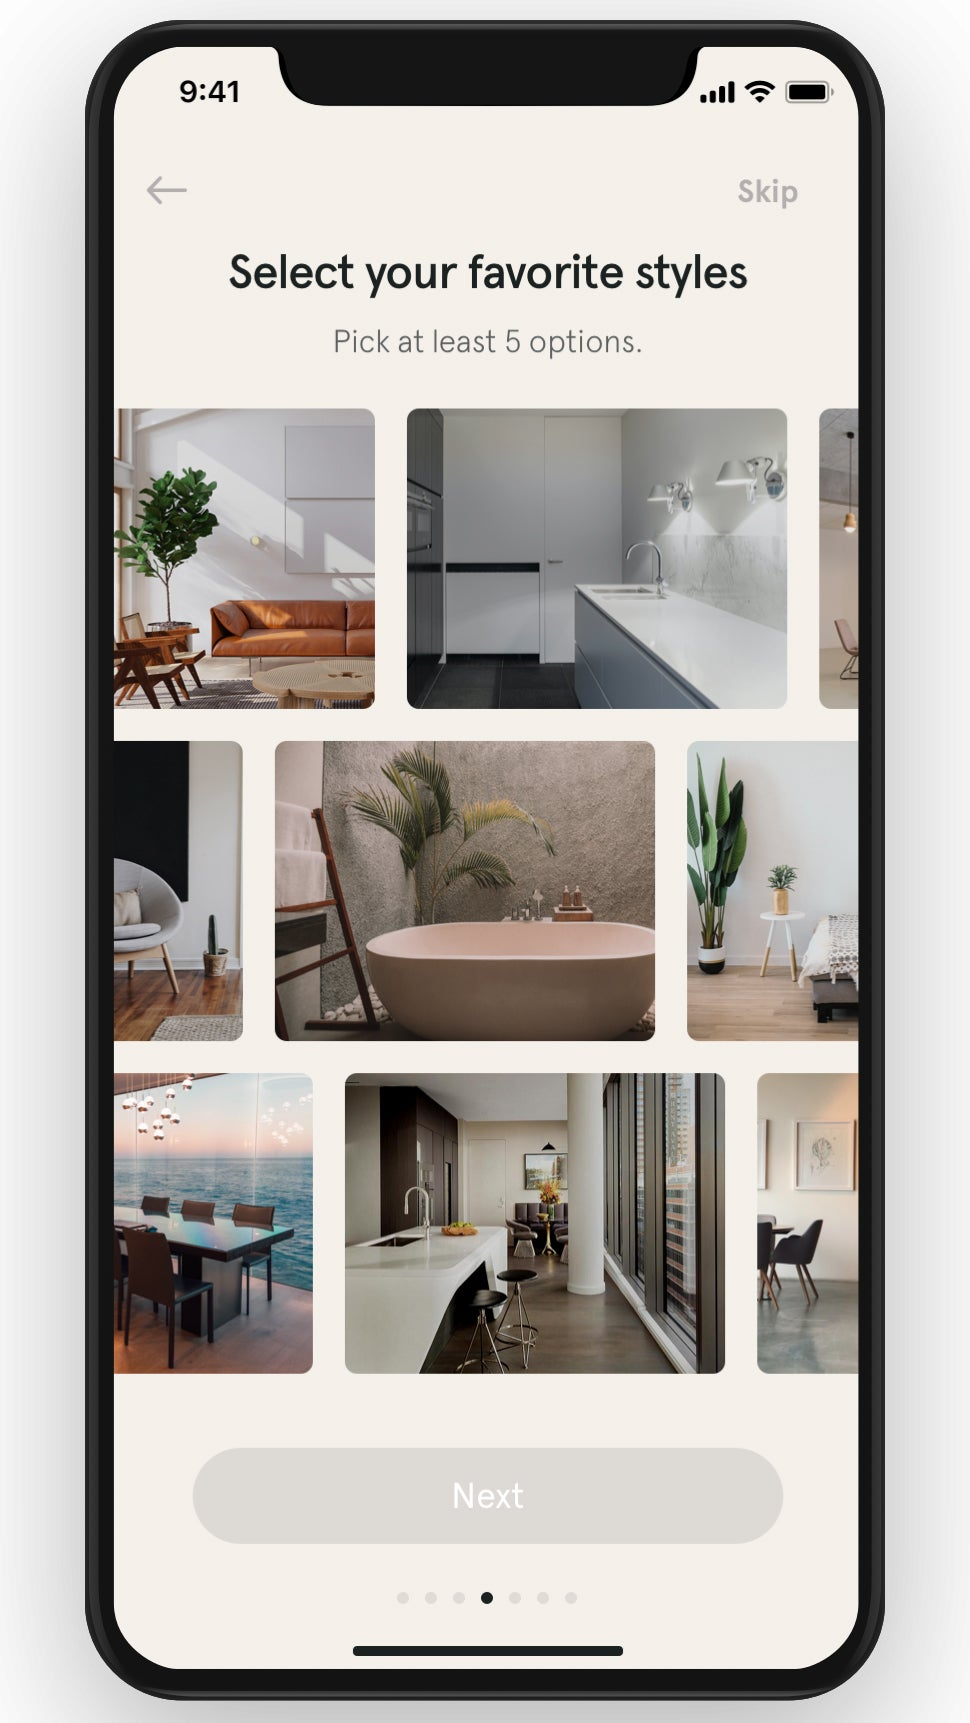 images of different houses